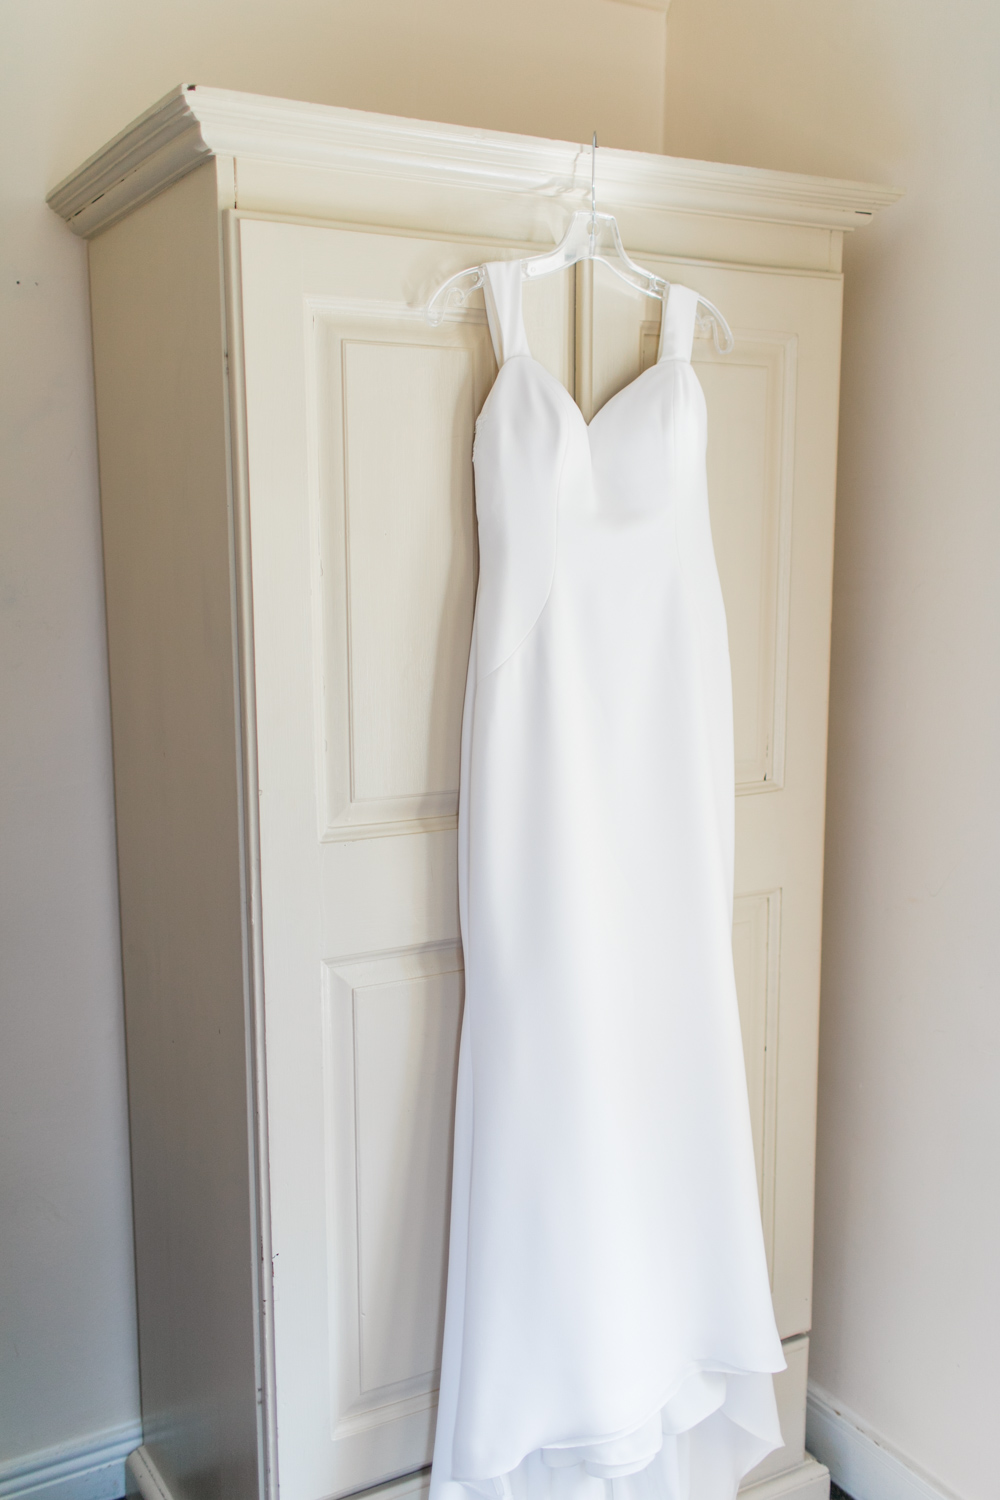 a white dress plain and elegant in design hanging in a hotel room off a white wardrobe